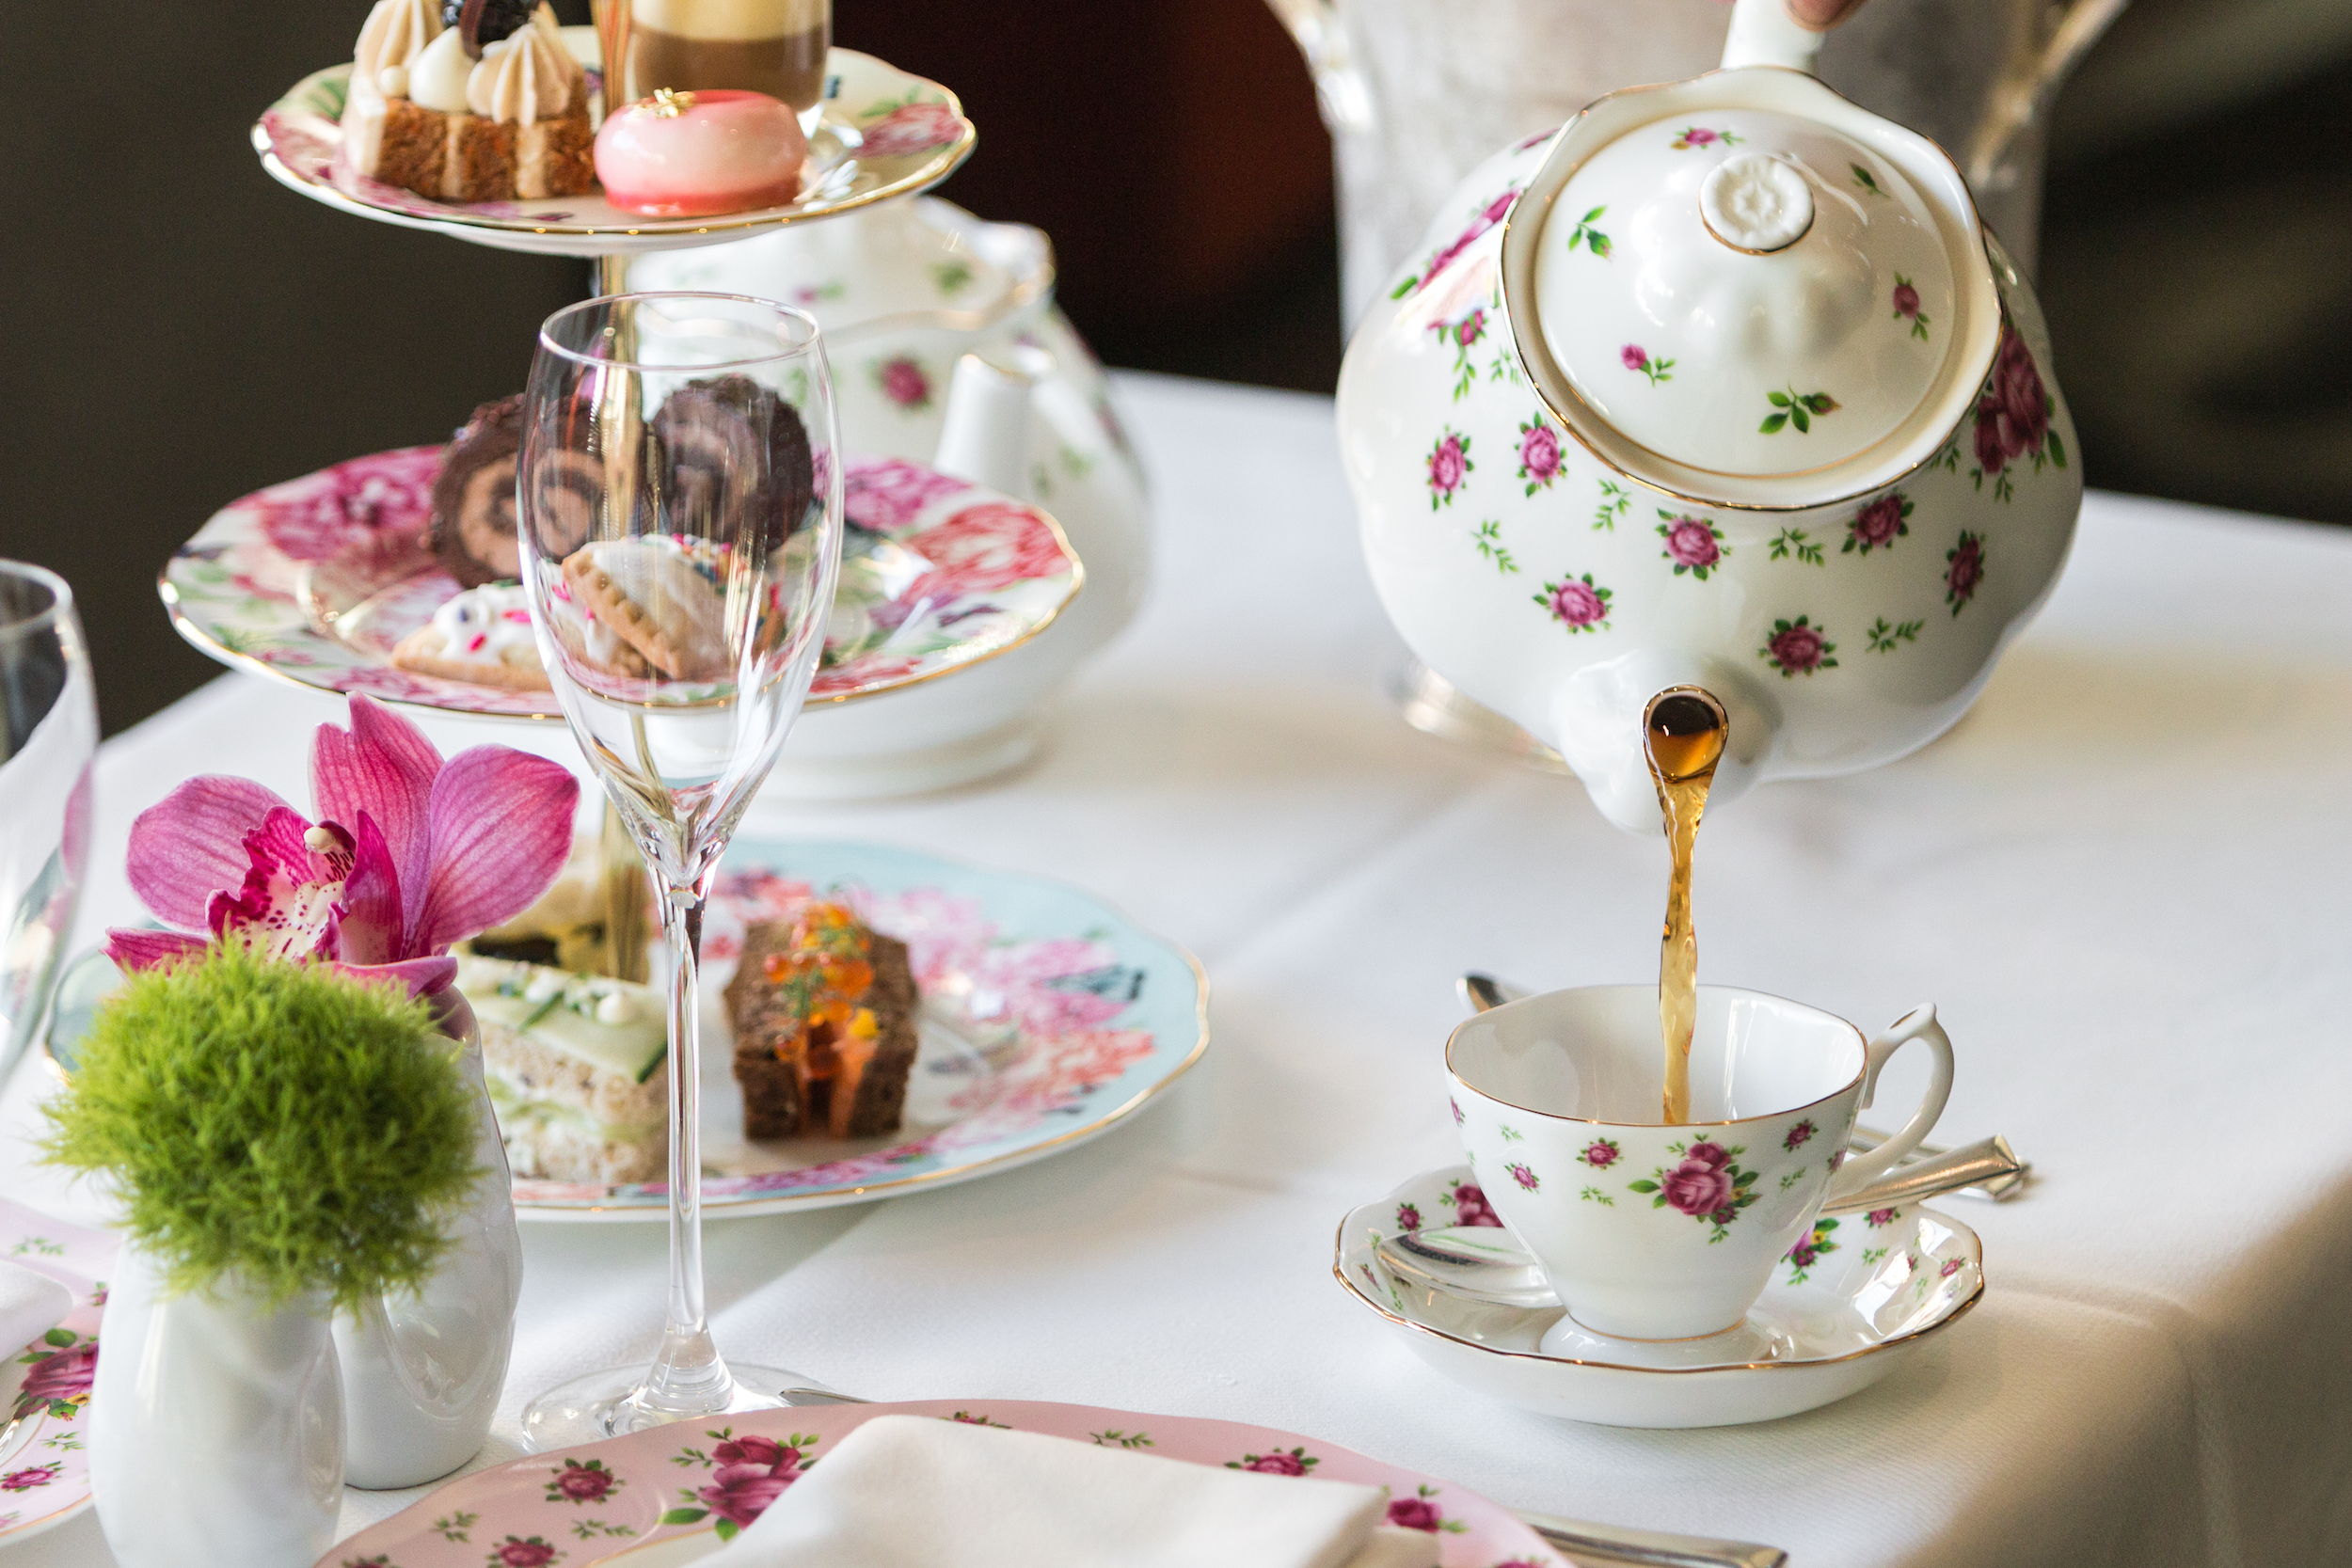 10 Great Places For Afternoon Tea Around DC